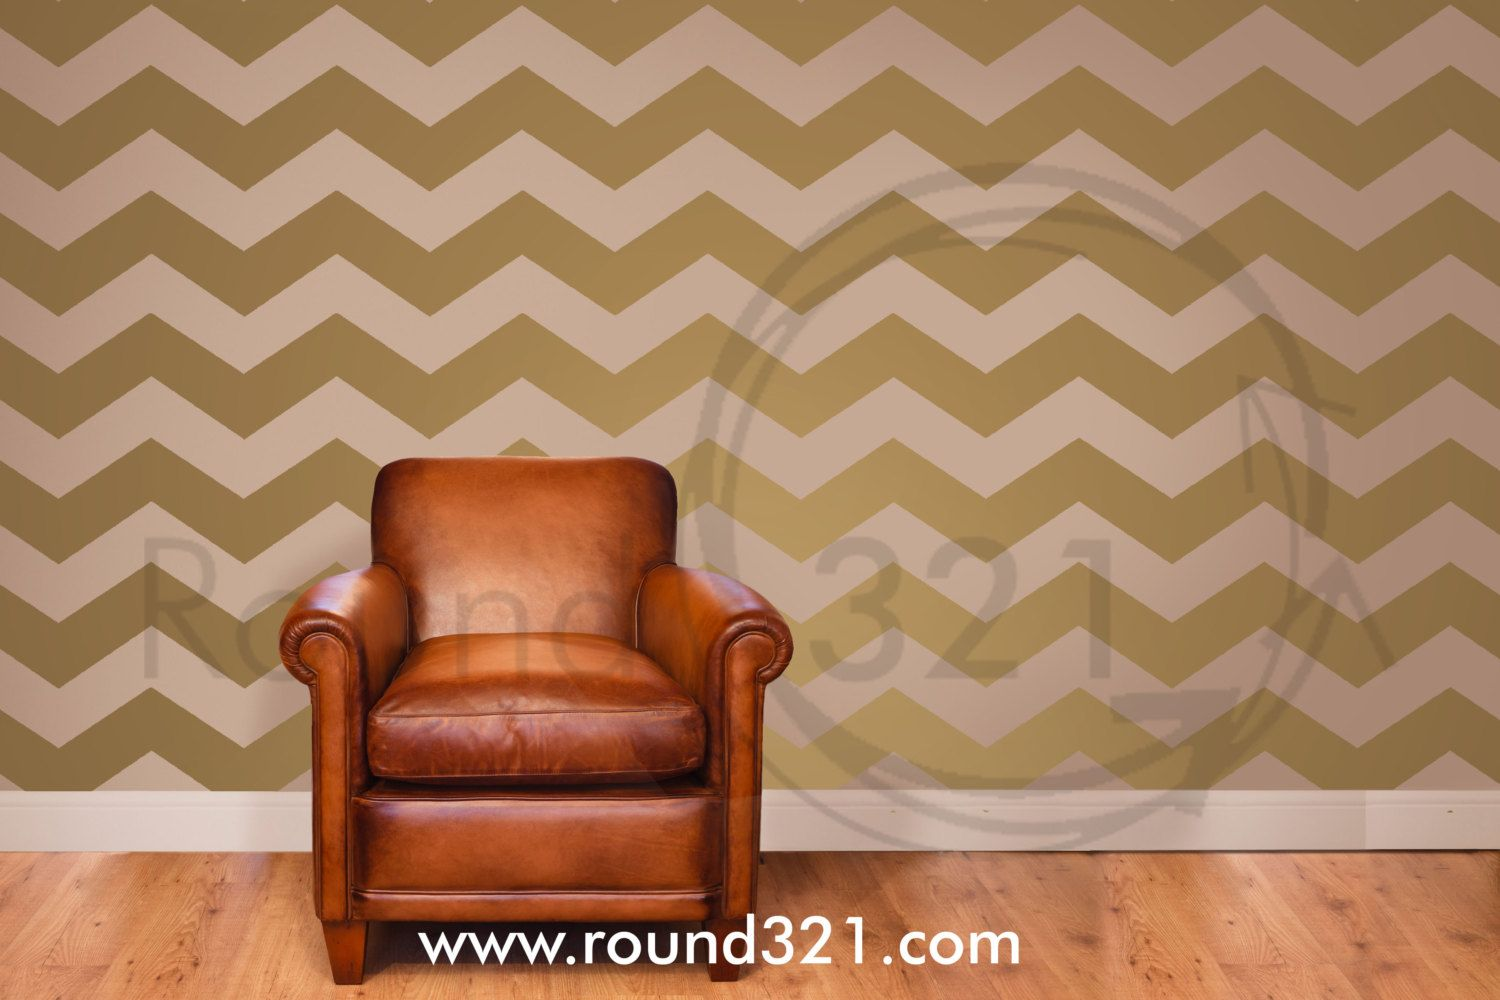 Chevron Print Decor Wall Decal Design For The Home Or By Round321. , Via  Etsy